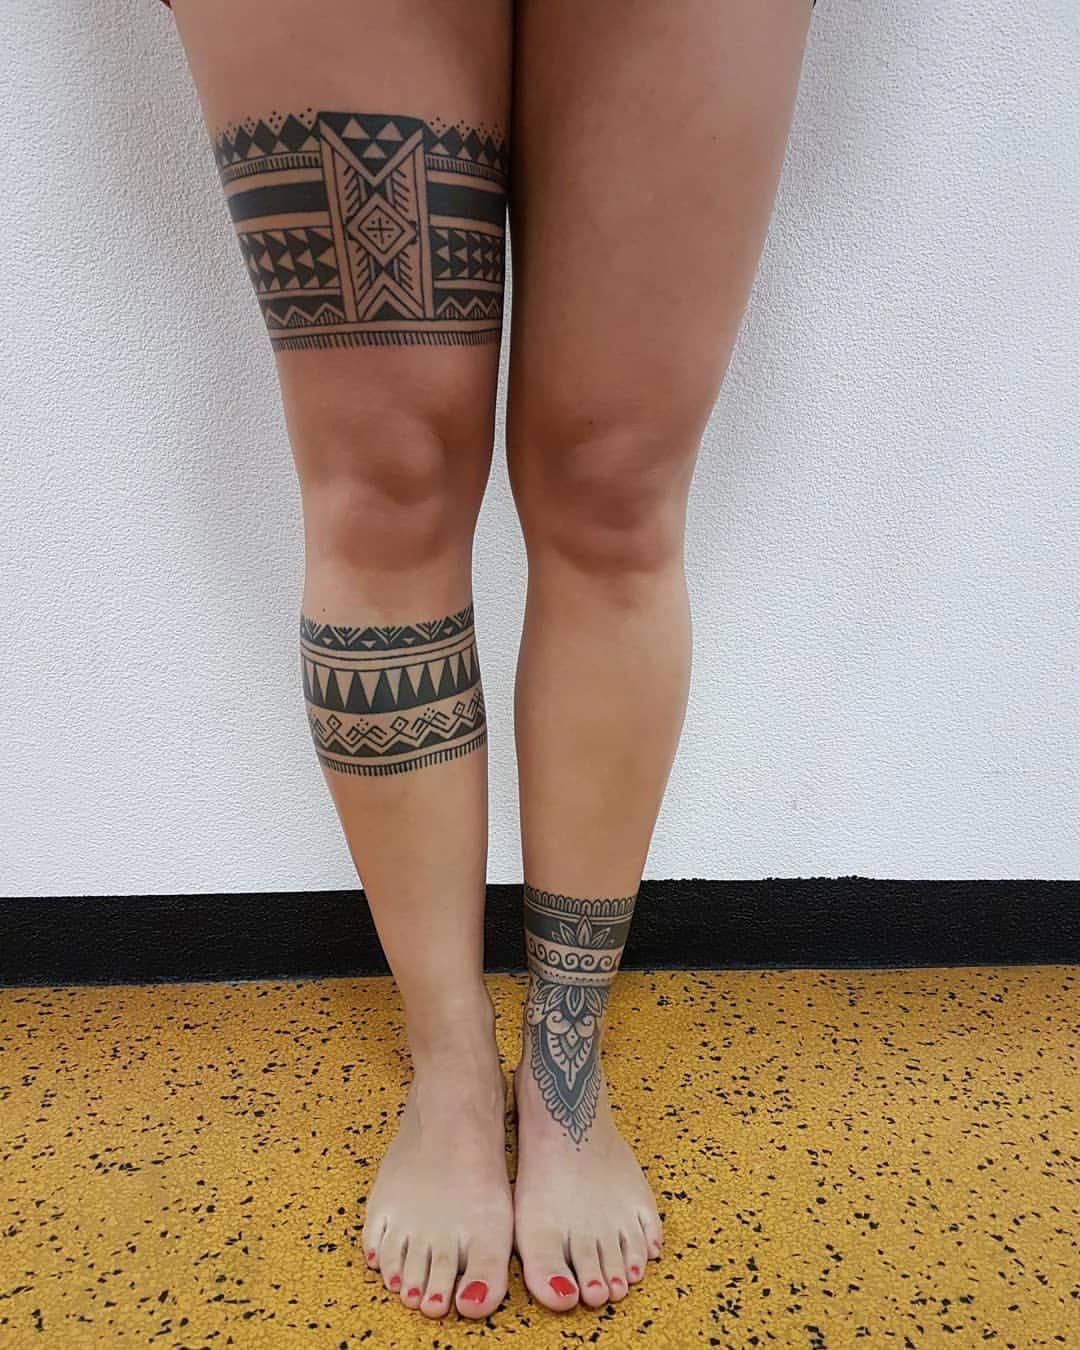 Sven Waeber Maoritattoos Polynesian Tattoos Women Leg Band Tattoos Anklet Tattoos